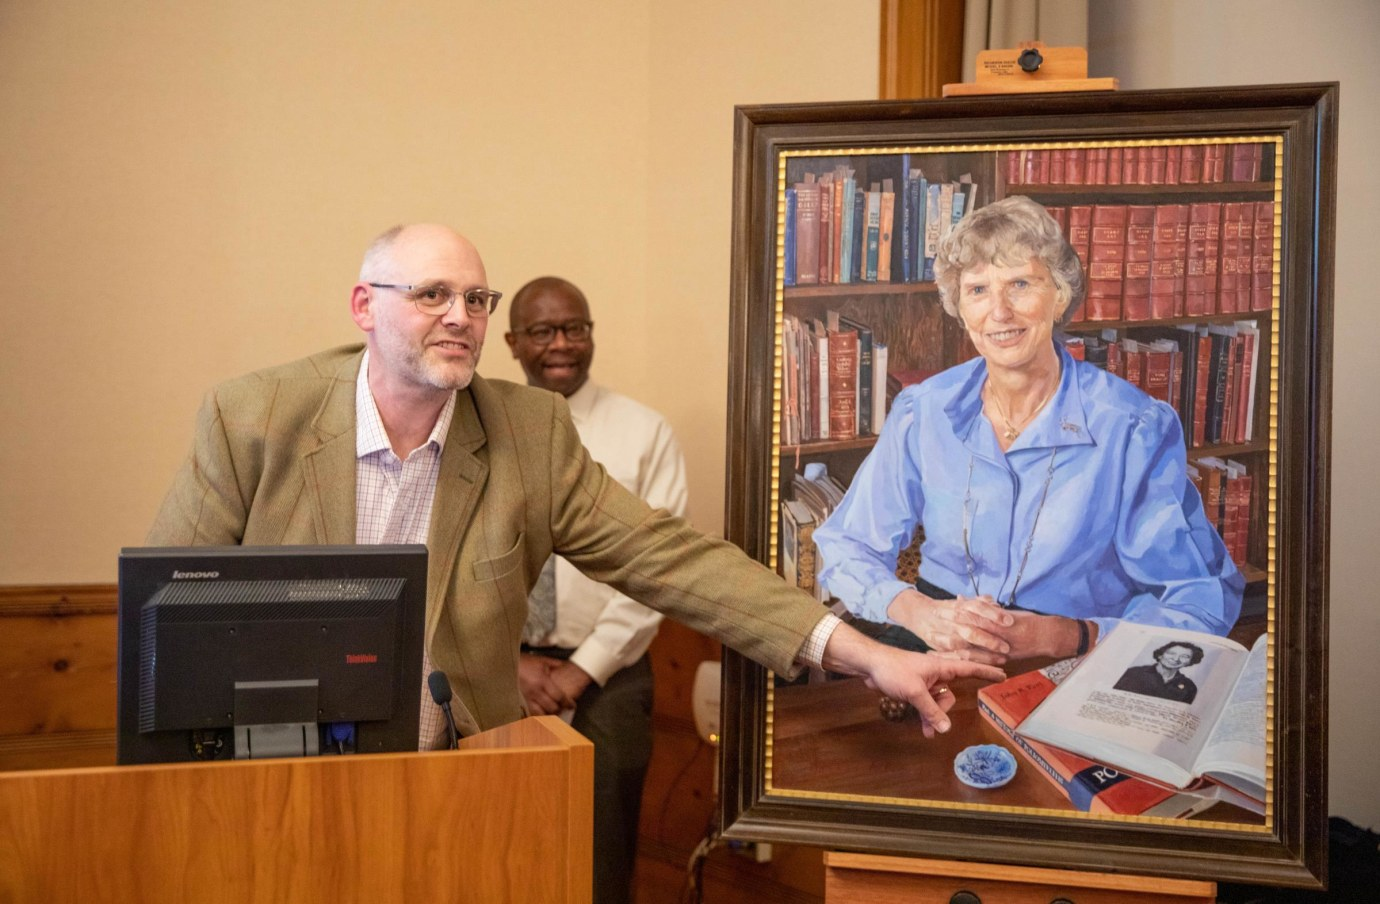 Alastair Adams and Darin Latimore at the unveiling of the portrait of Dorothy Horstmann, MD